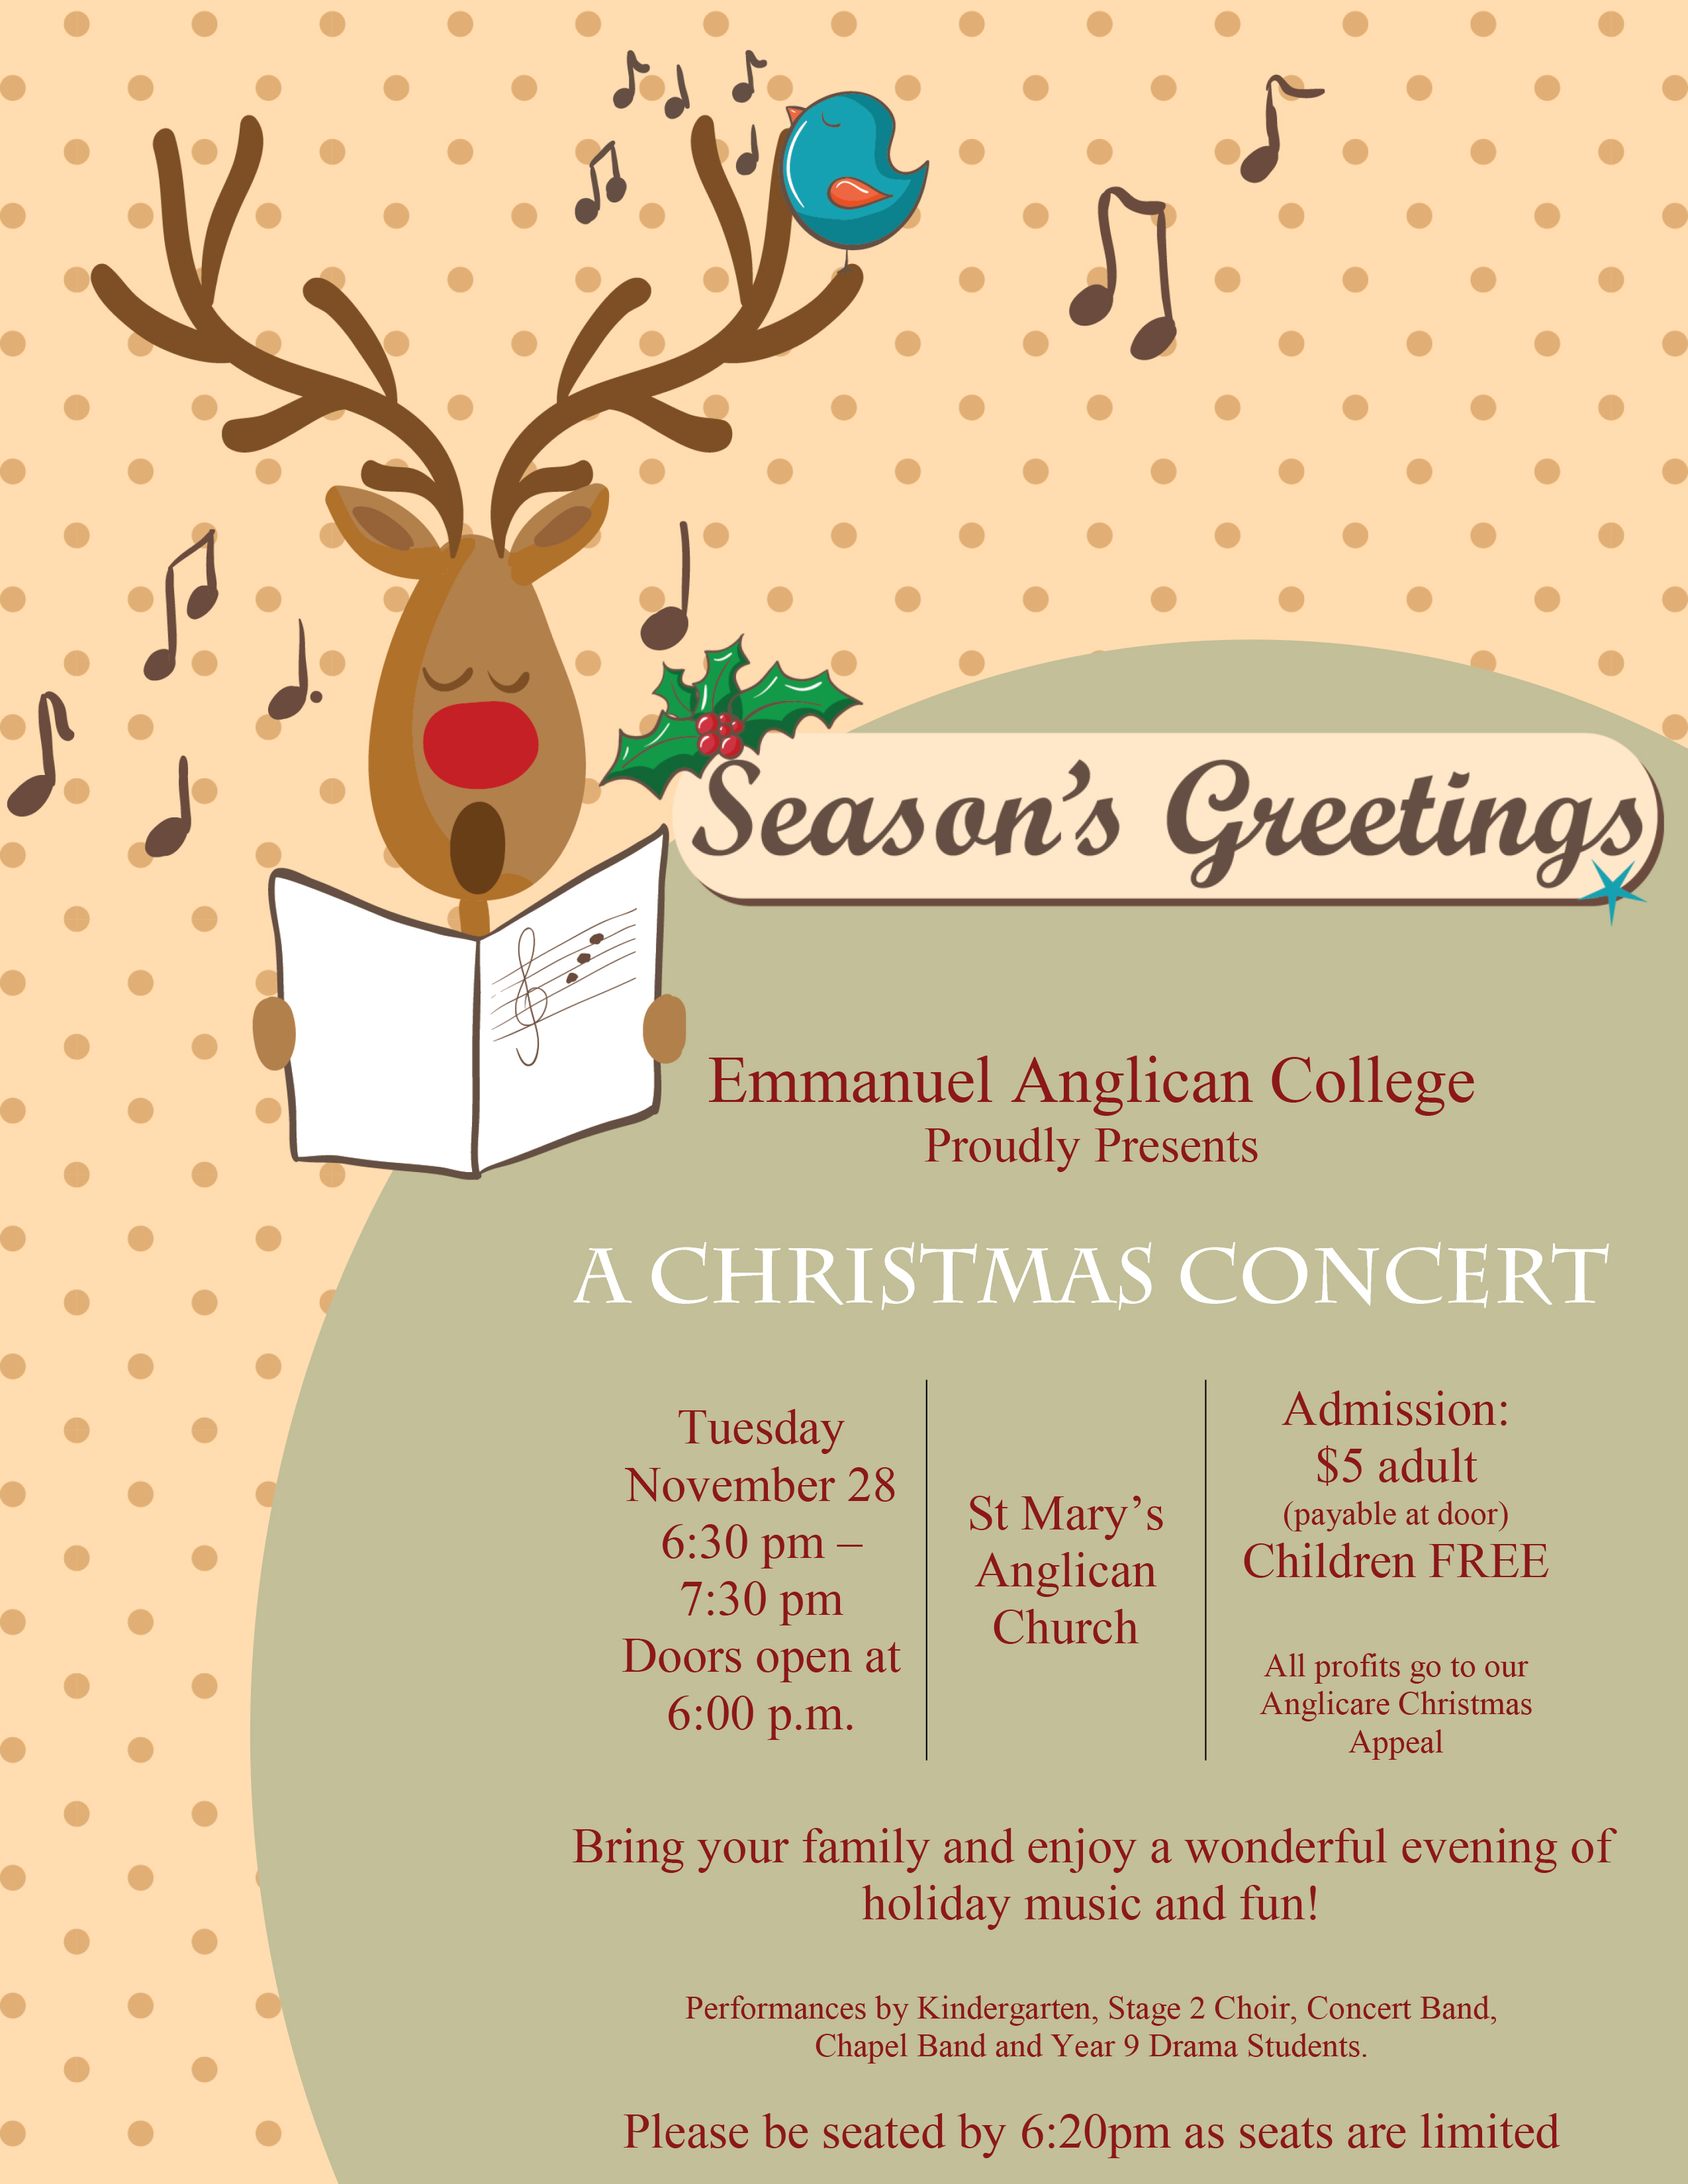 EAC Christmas Concert 2017 flyer (1)